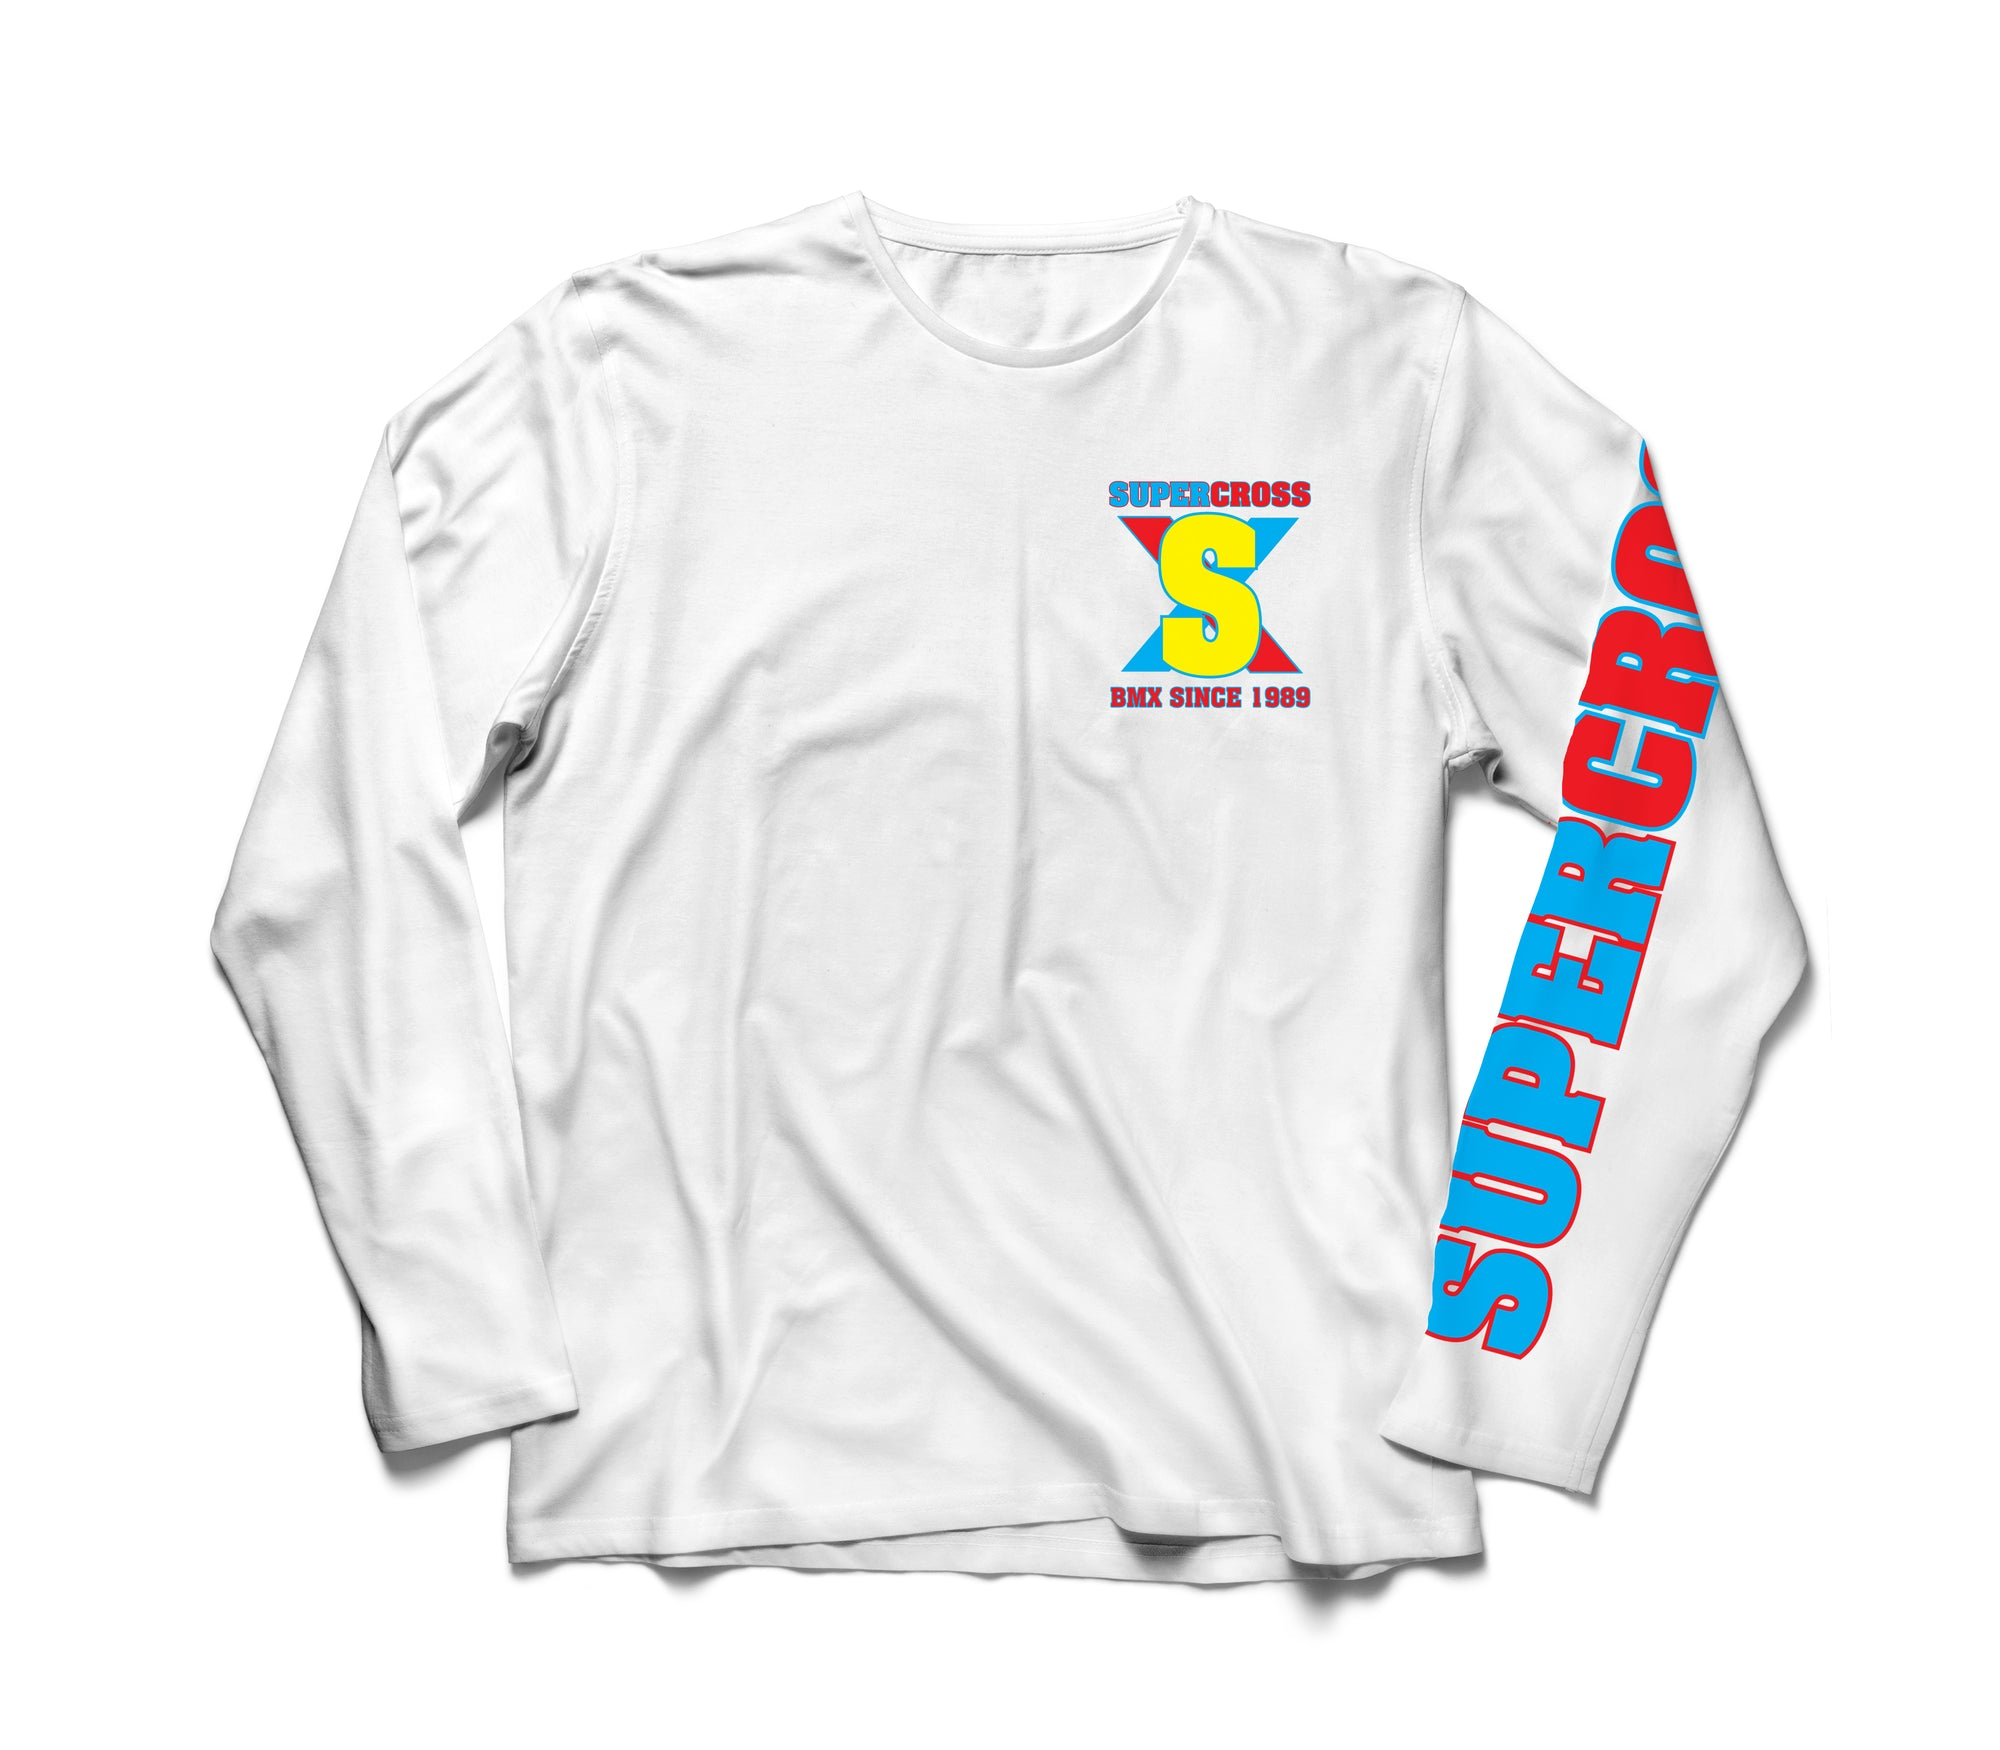 Supercross BMX | Long Sleeve Retro T- Shirt - Supercross BMX - BMX Racing